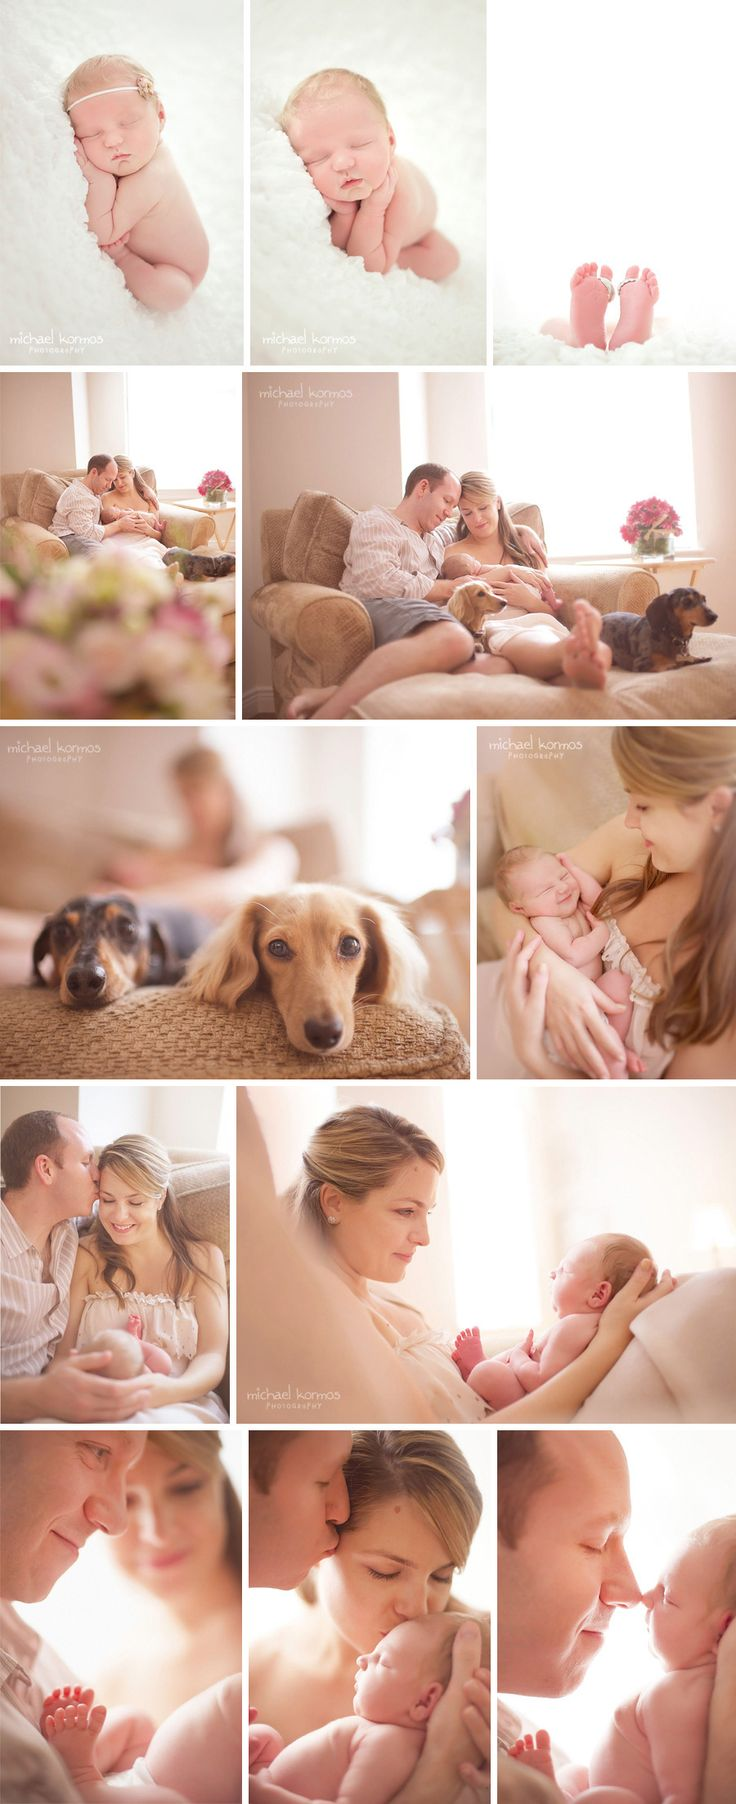 I love the fact that the weenies were a part of this shoot. All things are better with a weenie dog or 5 :)